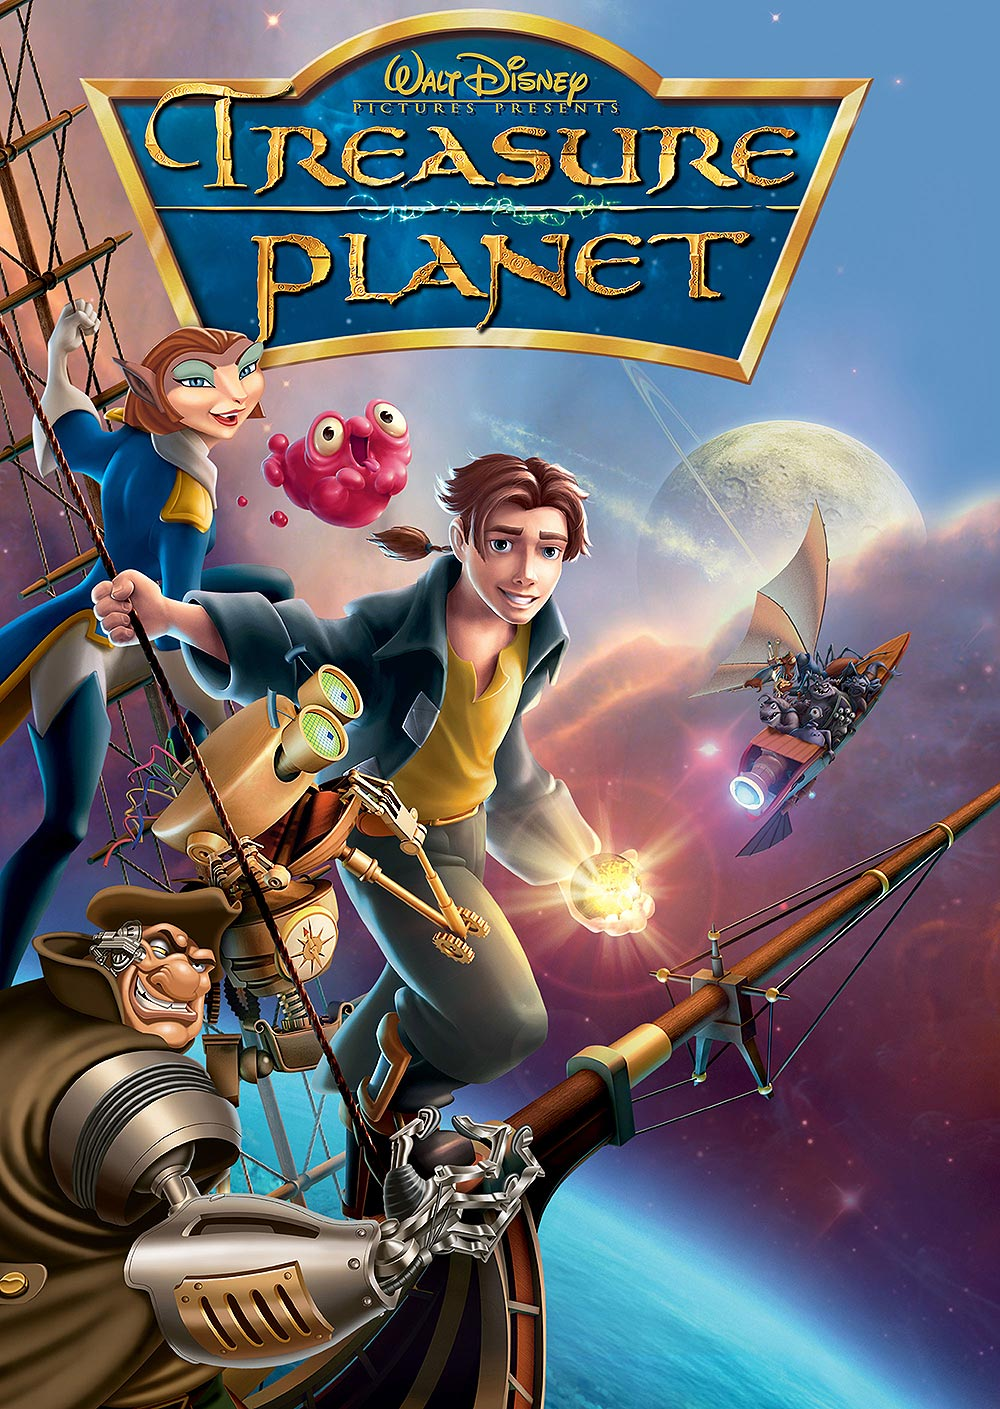 Treasure Planet (2002; animated)